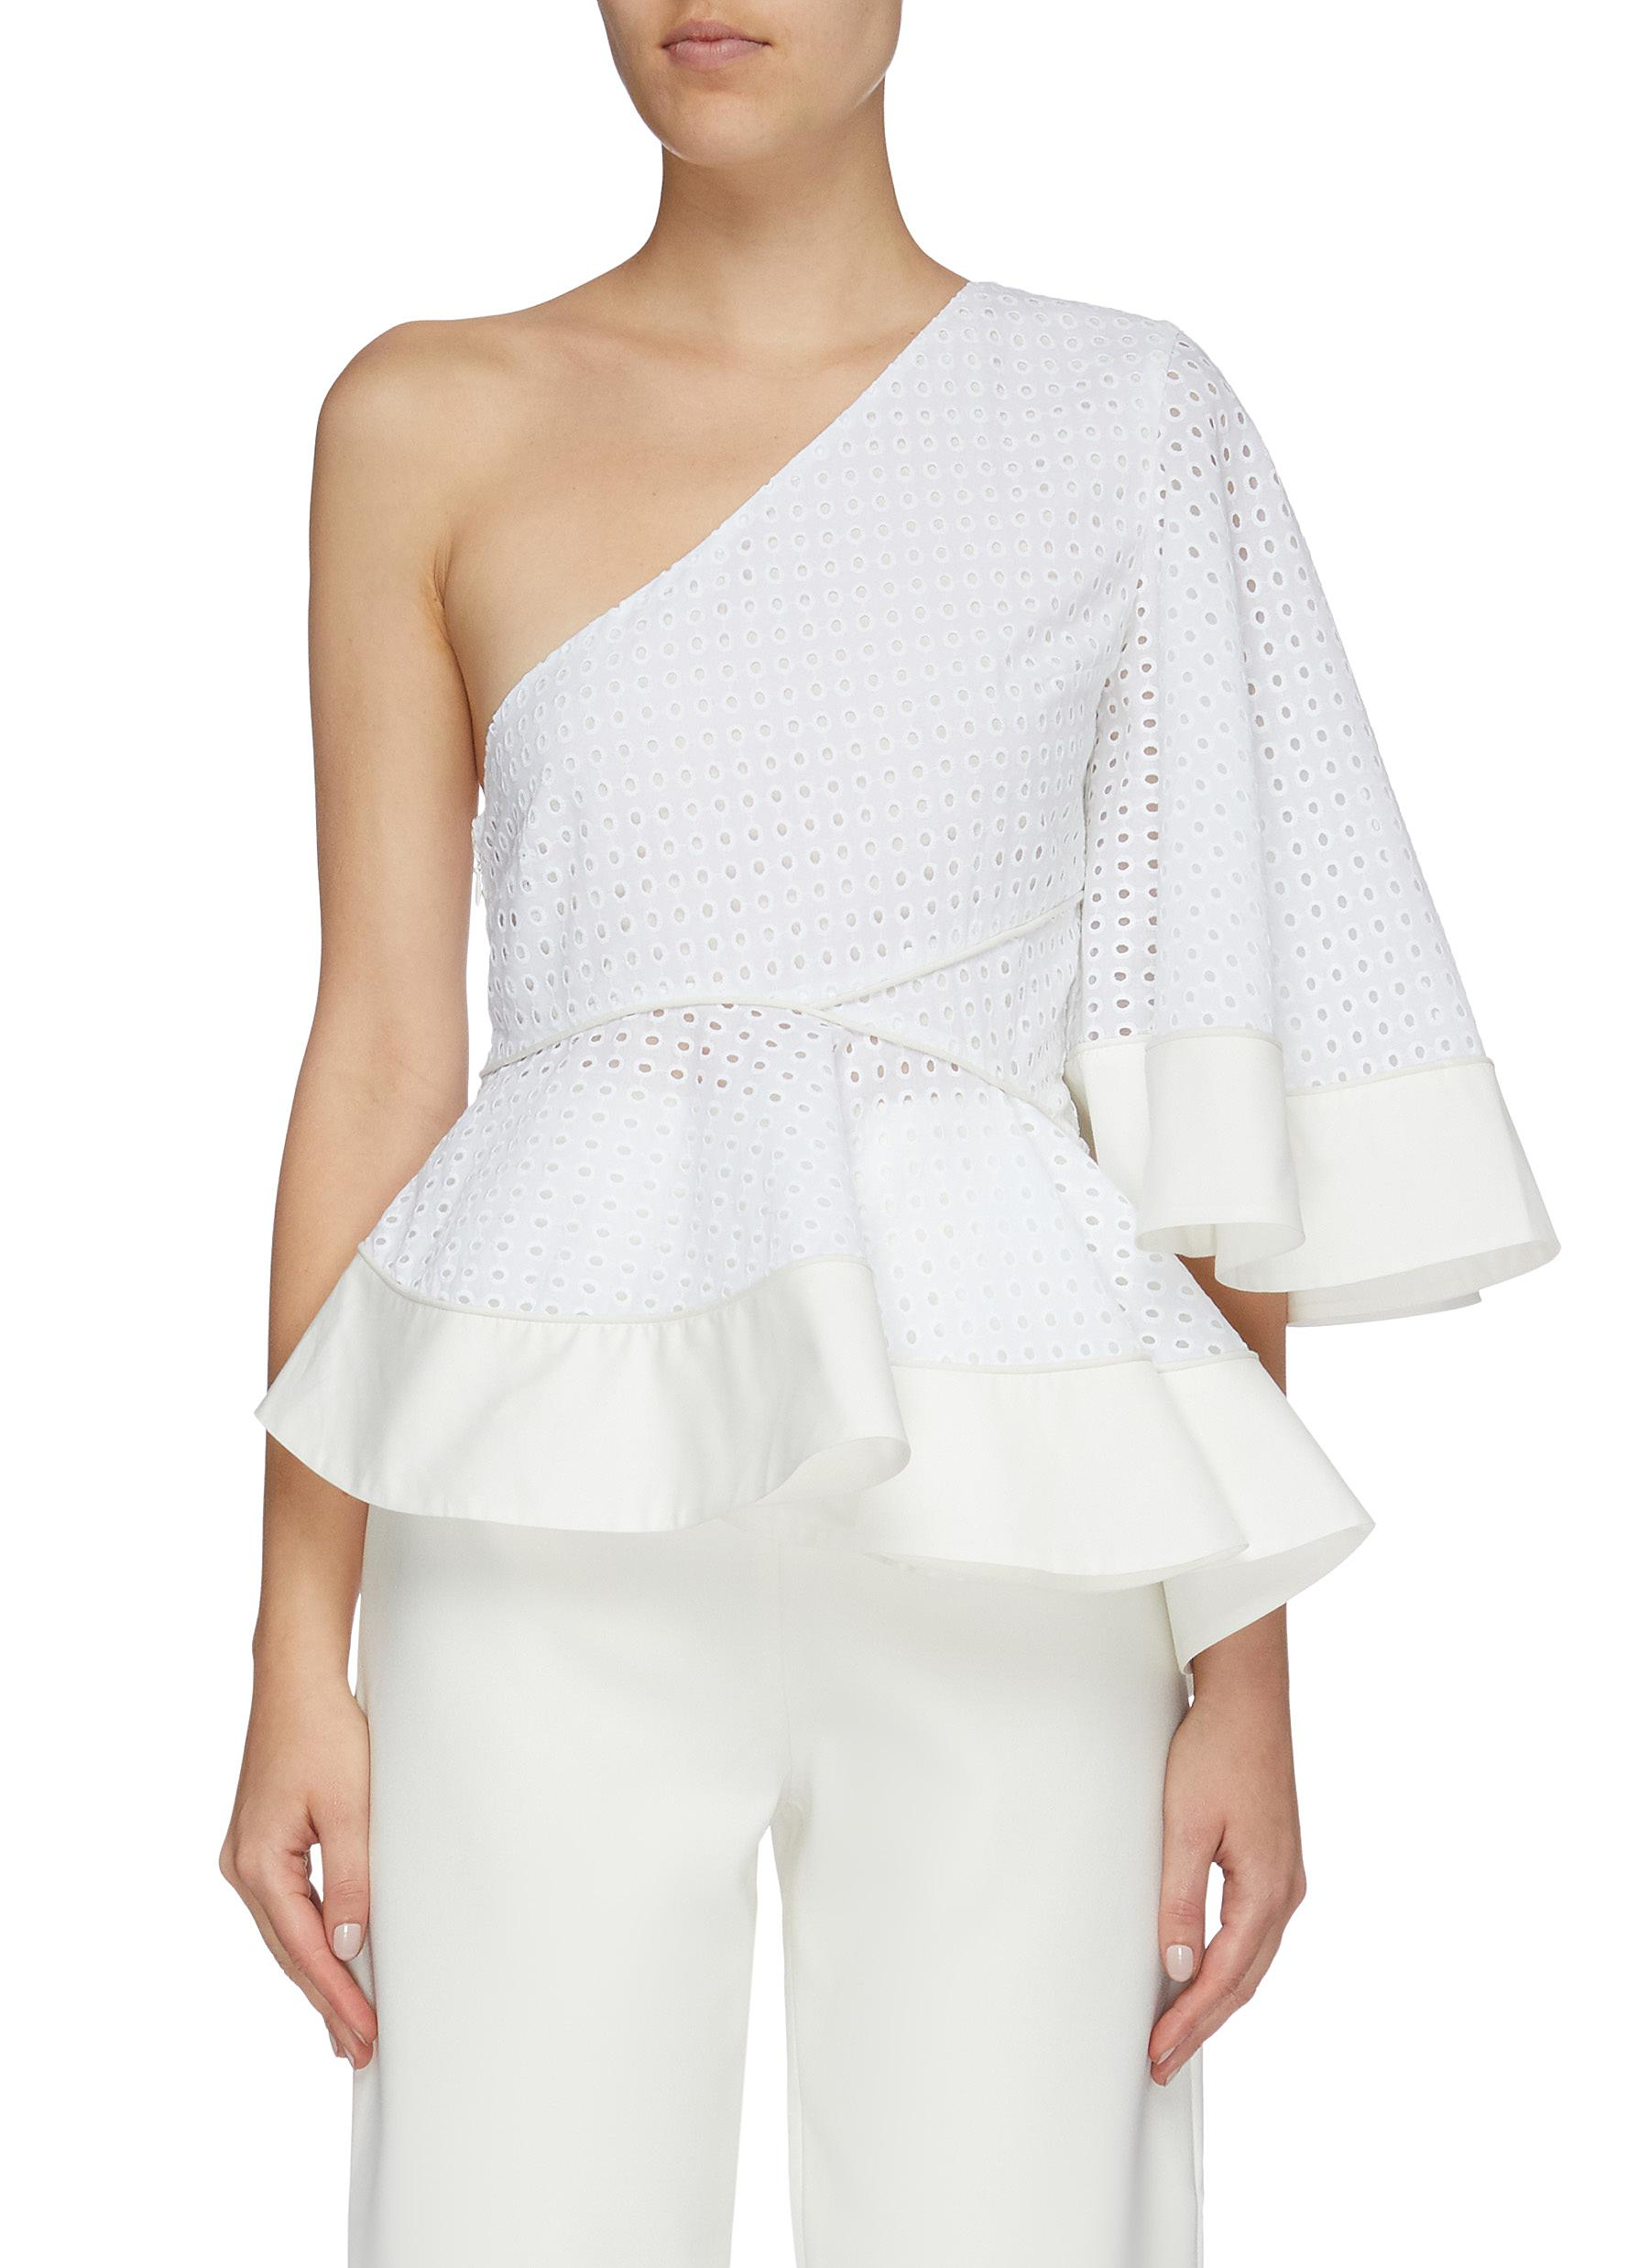 Cala broderie anglaise one-shoulder peplum top by Solace London